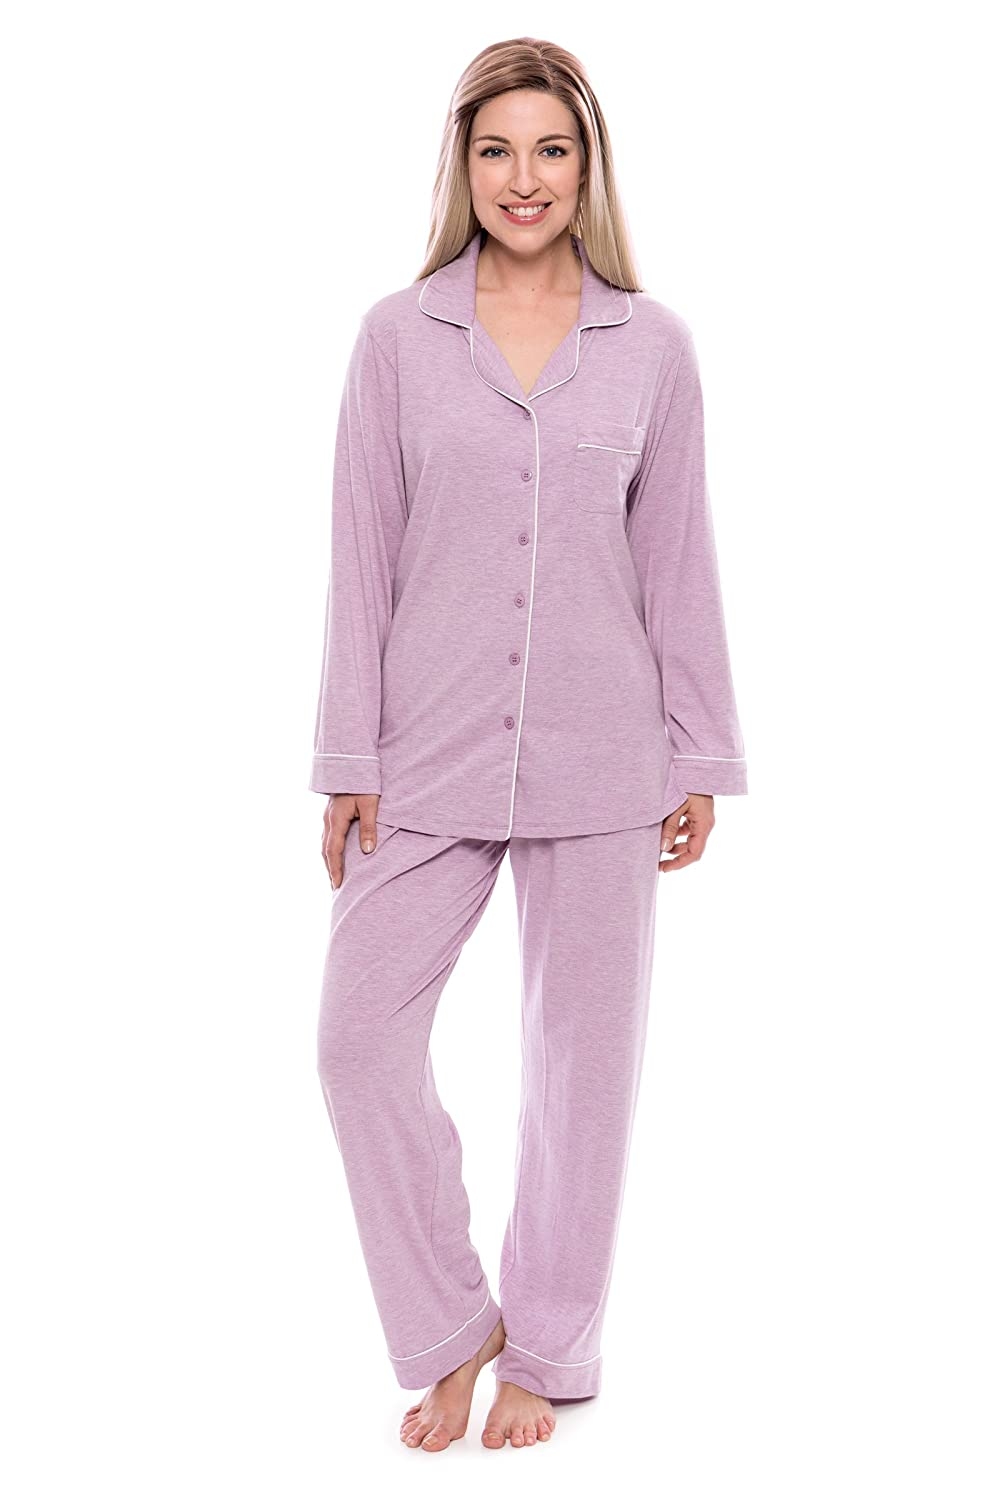 Heather purplec Women's ButtonUp Sleepwear Set (Classic Comfort) EcoFriendly Gifts by Texere